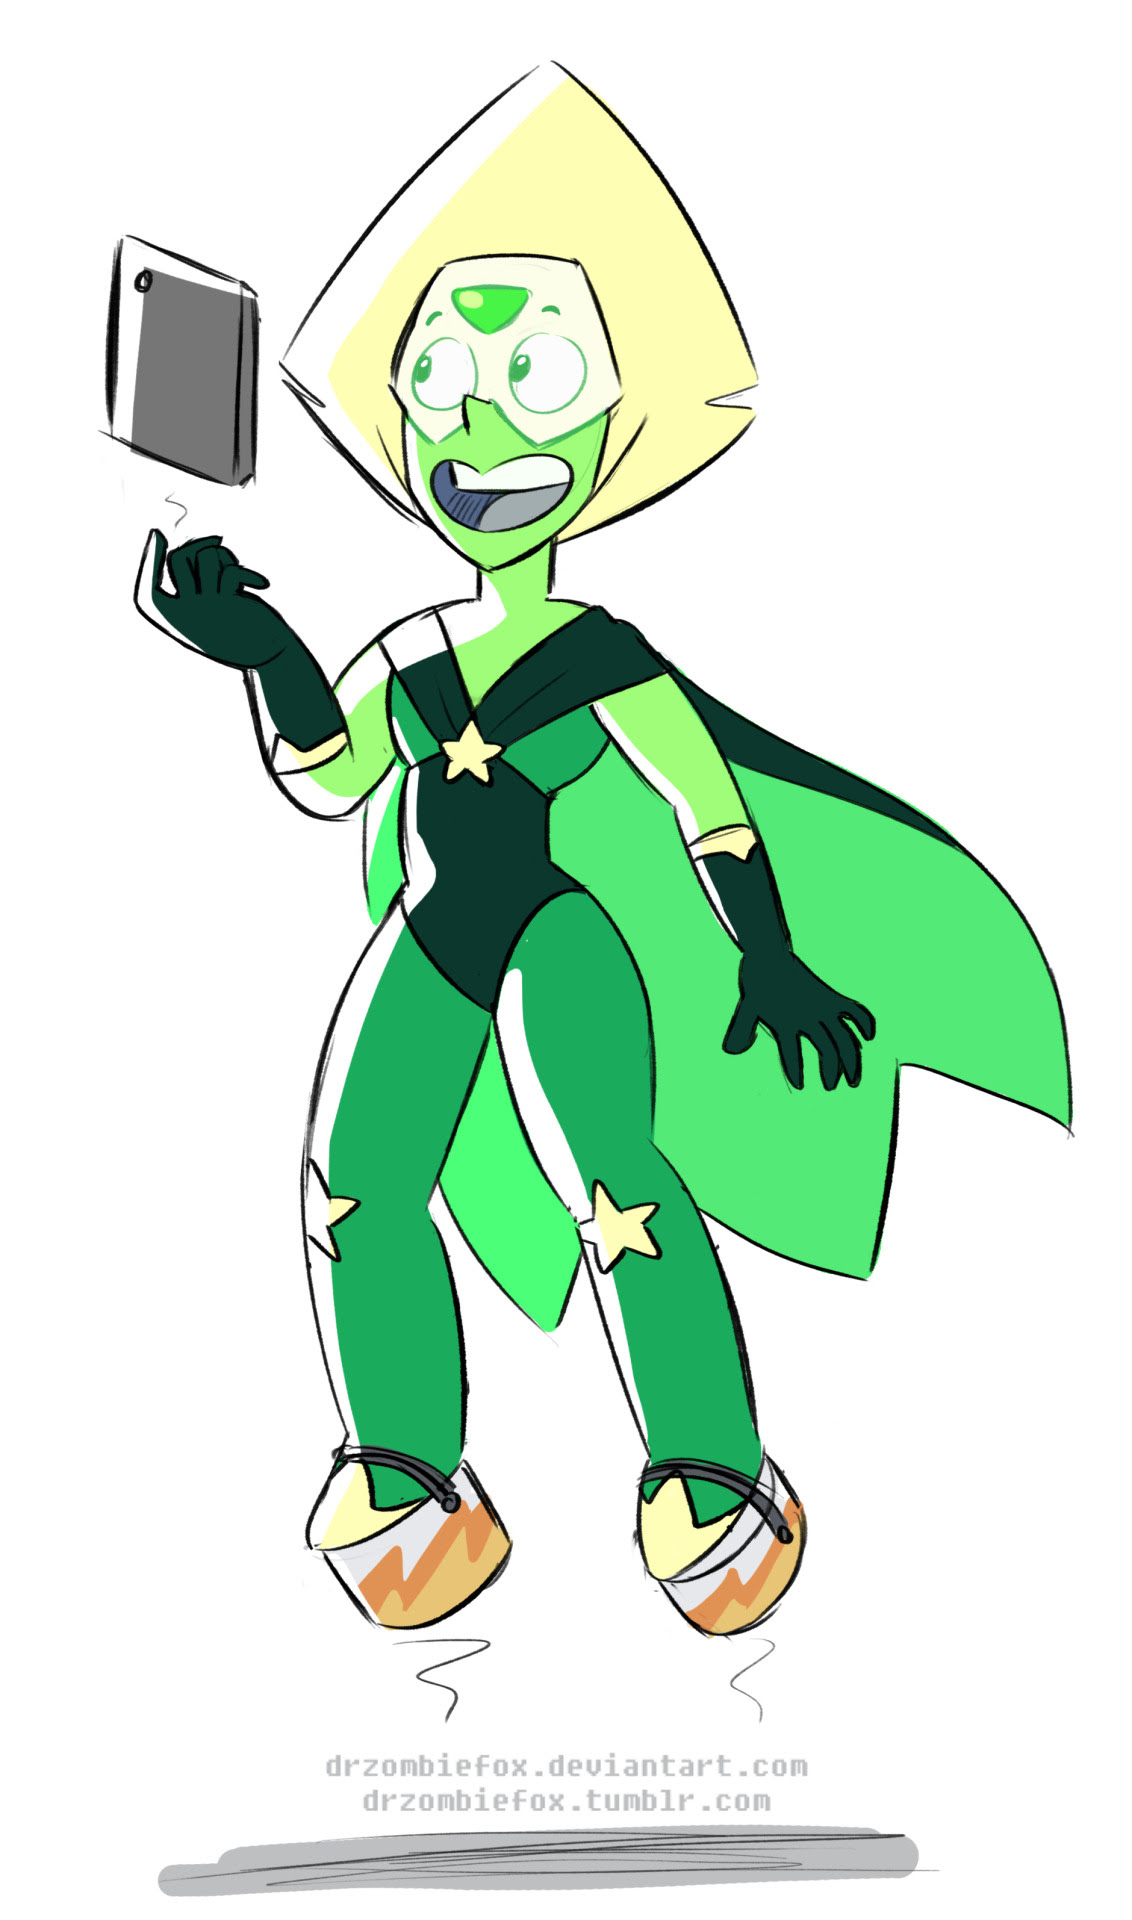 In light of the recent episode I have two thoughts: 1) In theory Peridot could levitate if she wore her paint cans (or another metalic object) 2) When Peri gets a CG outfit she NEEDS a cape! She gotta...